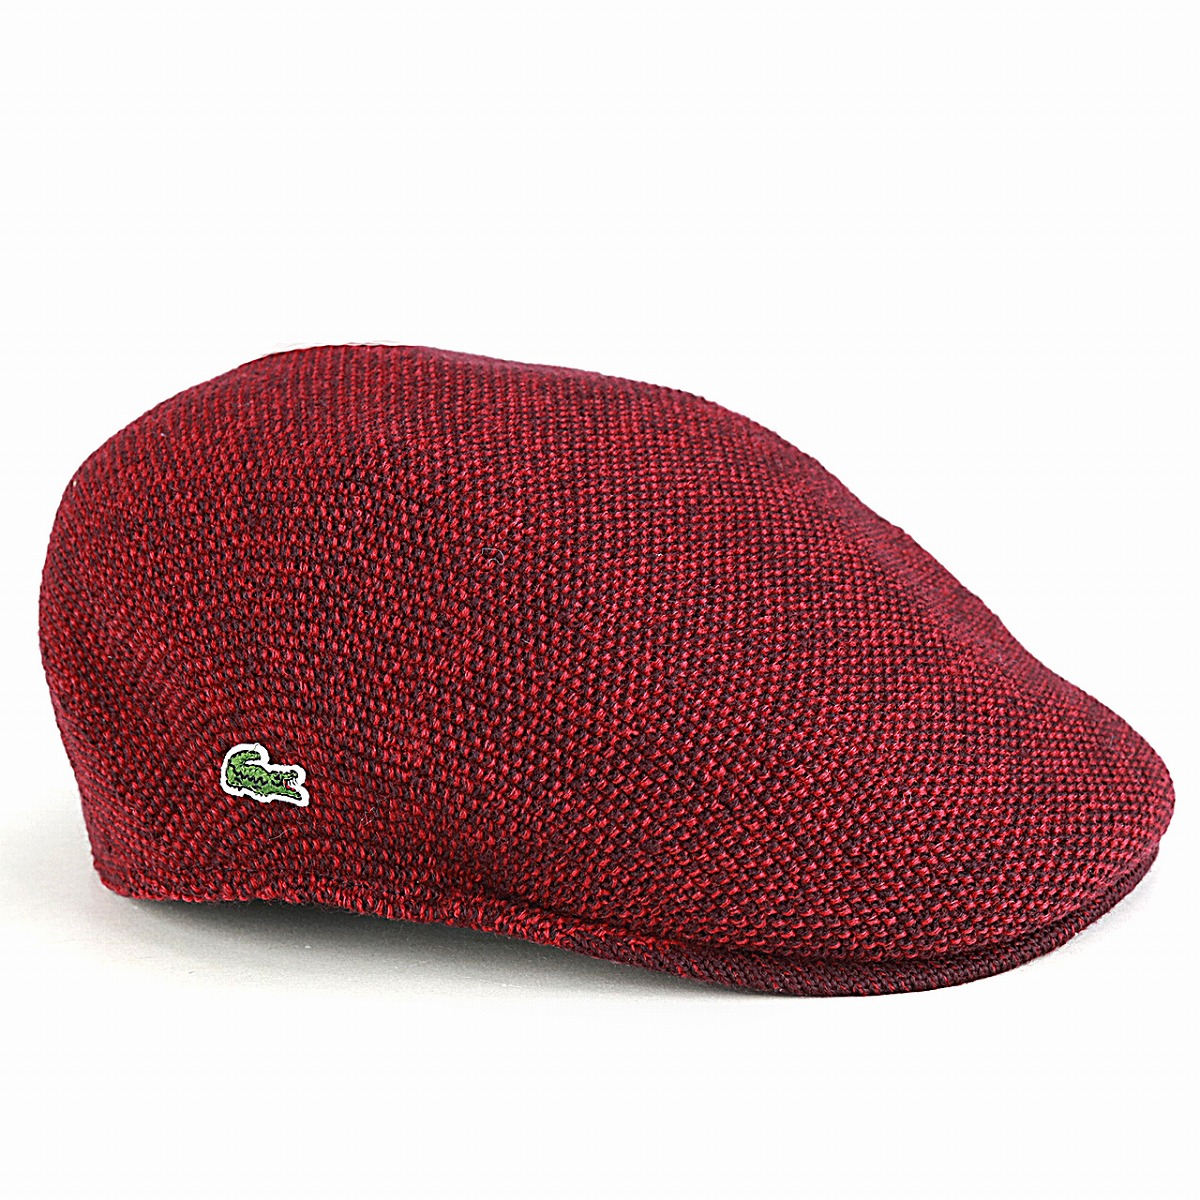 43283d77122 Present hat mail order of the Lacoste hunting cap knit LACOSTE men hat Shin  pull Lady s size adjustable thermostat knit fashion brand crocodile 58cm  simple ...